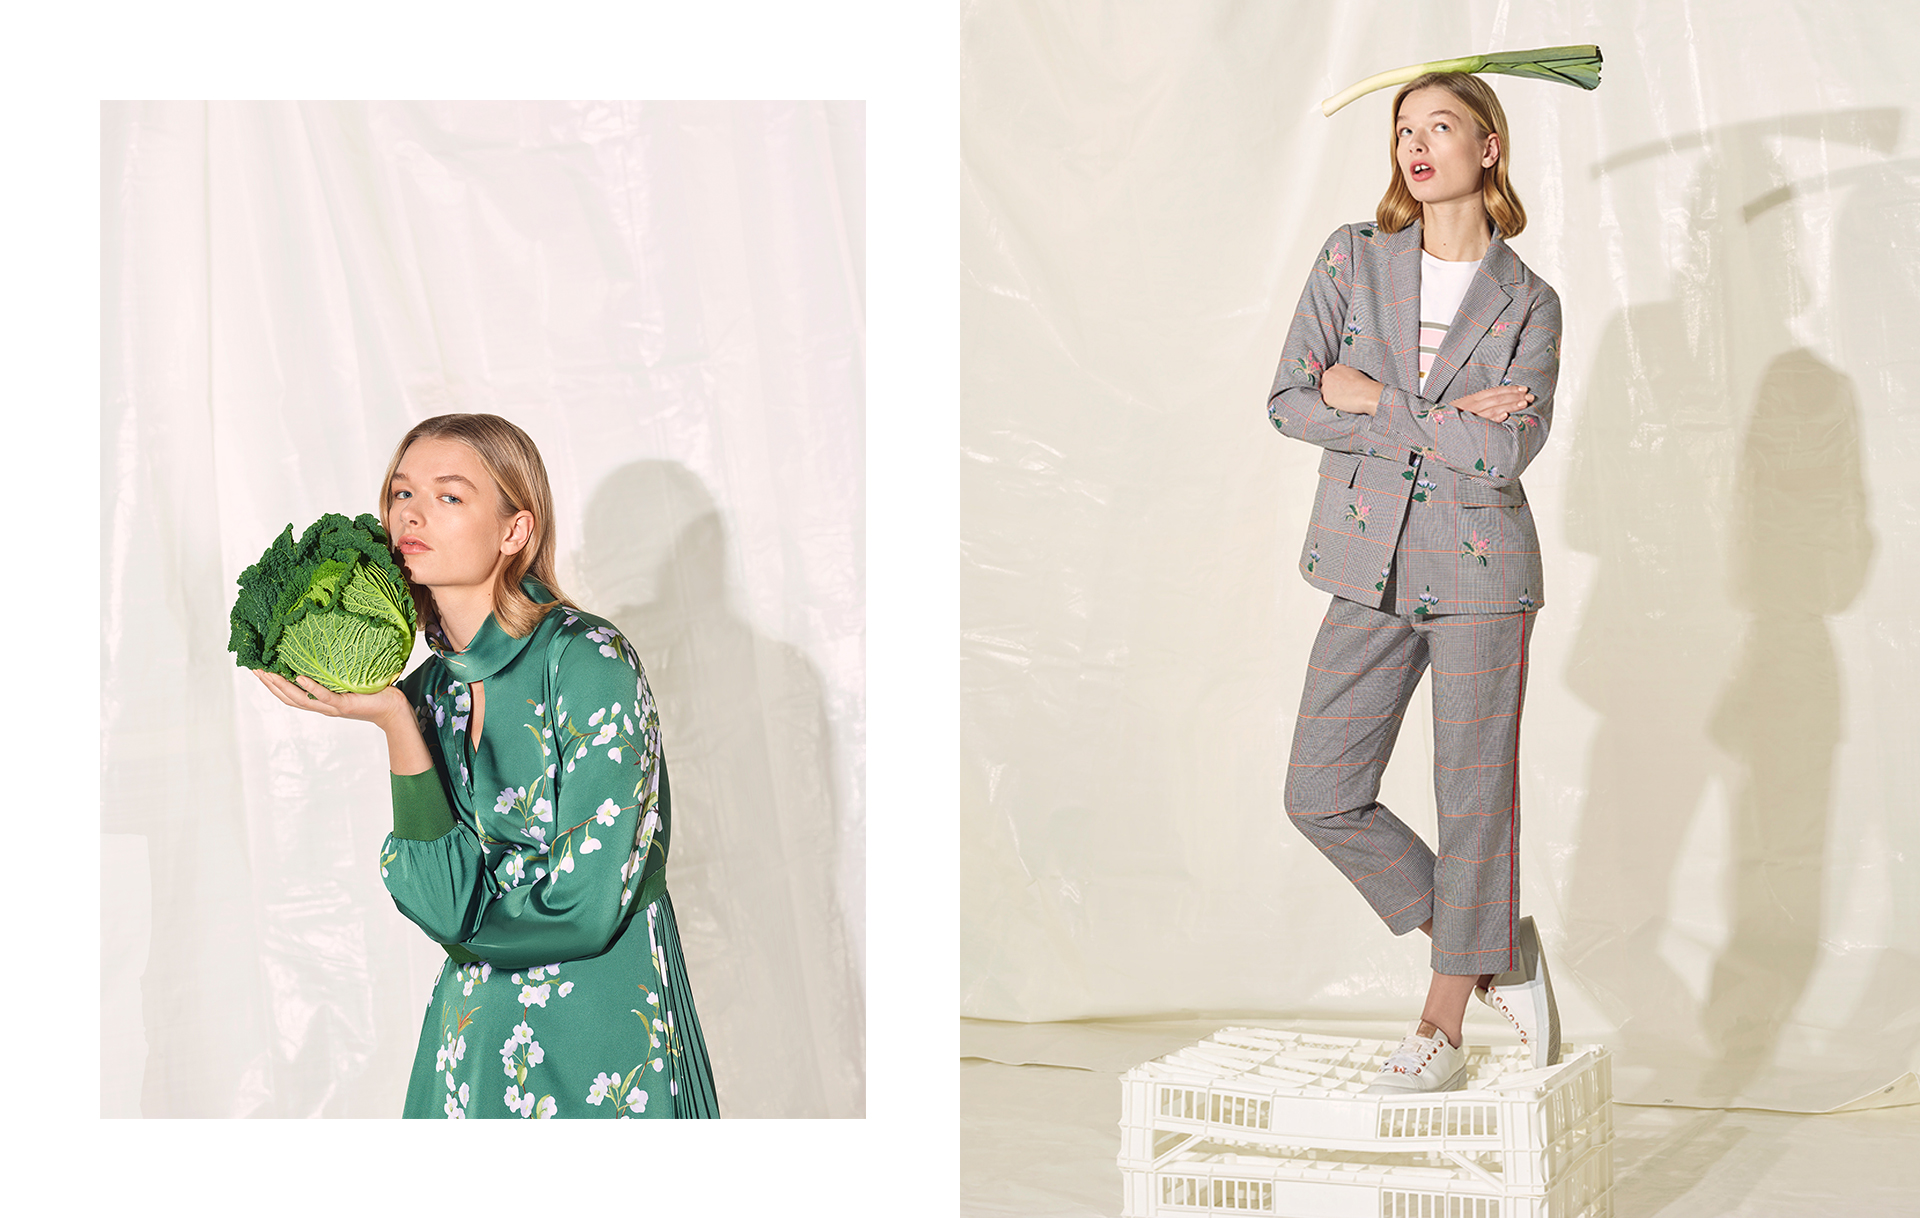 ted_baker_fashion_retouching_post_production